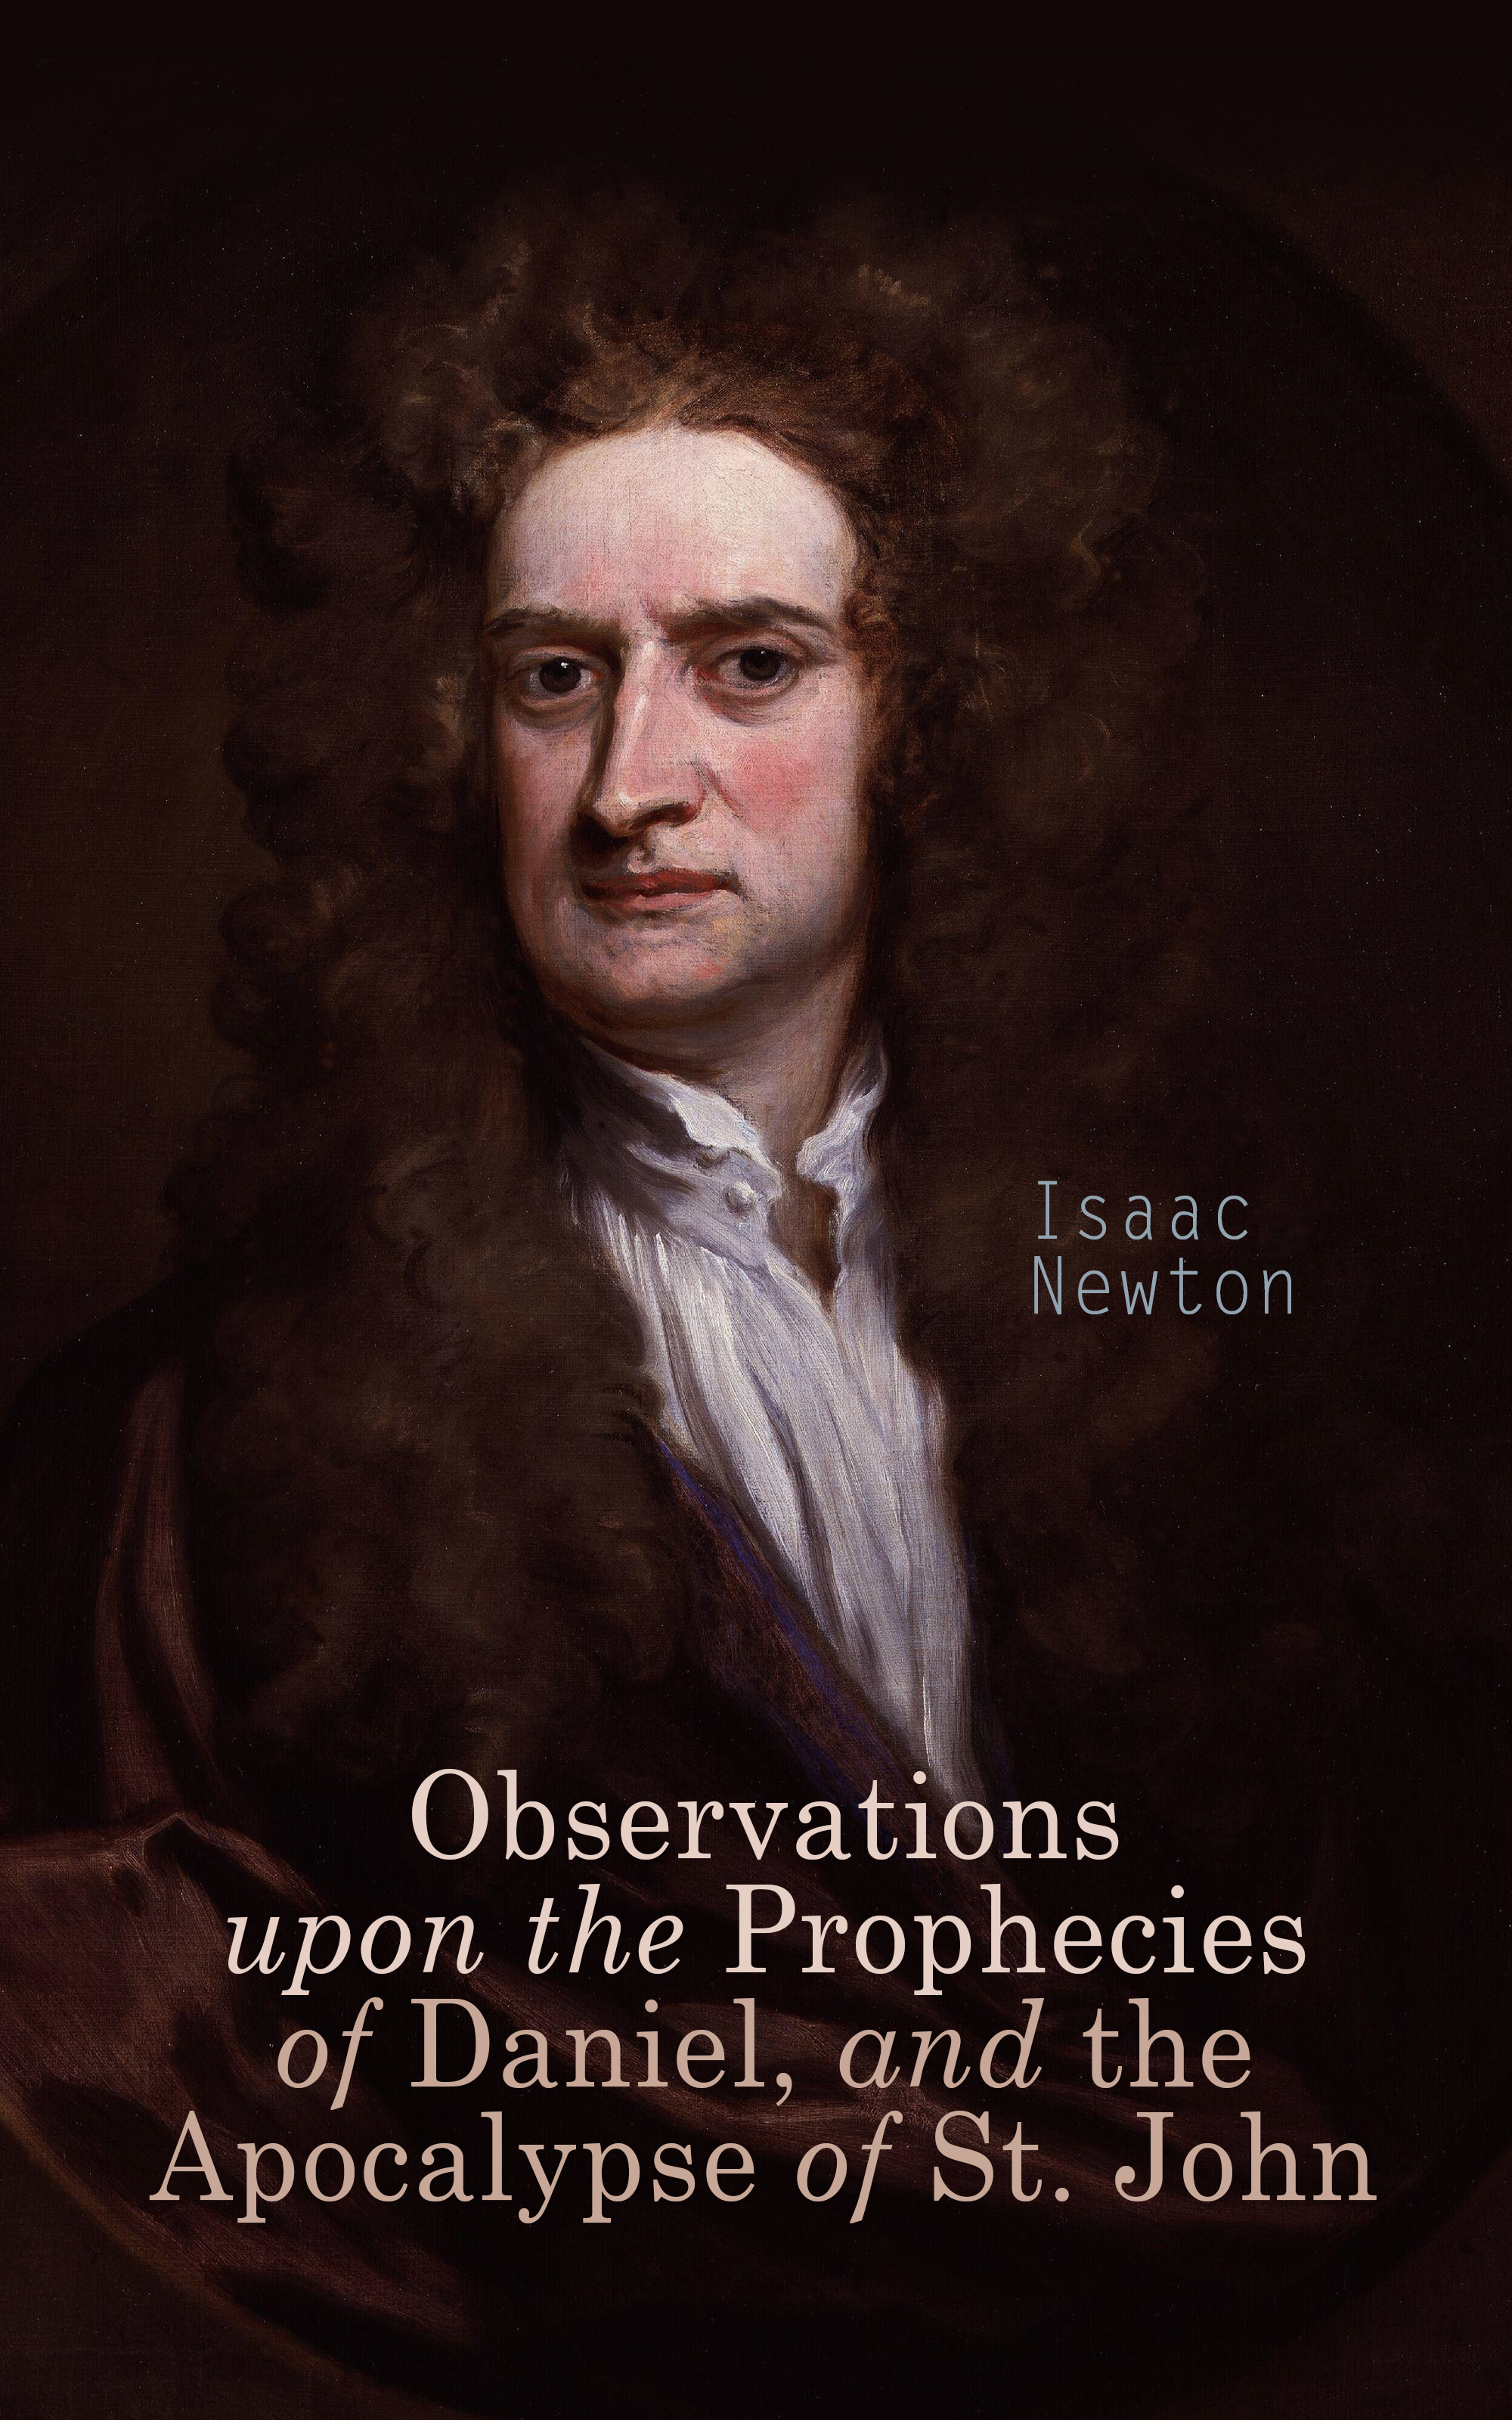 Isaac Newton Observations upon the Prophecies of Daniel, and the Apocalypse of St. John daniel defoe the life and aventures of robinson crusoe to which is prefixed a biographical memoir of daniel de foe volume 3